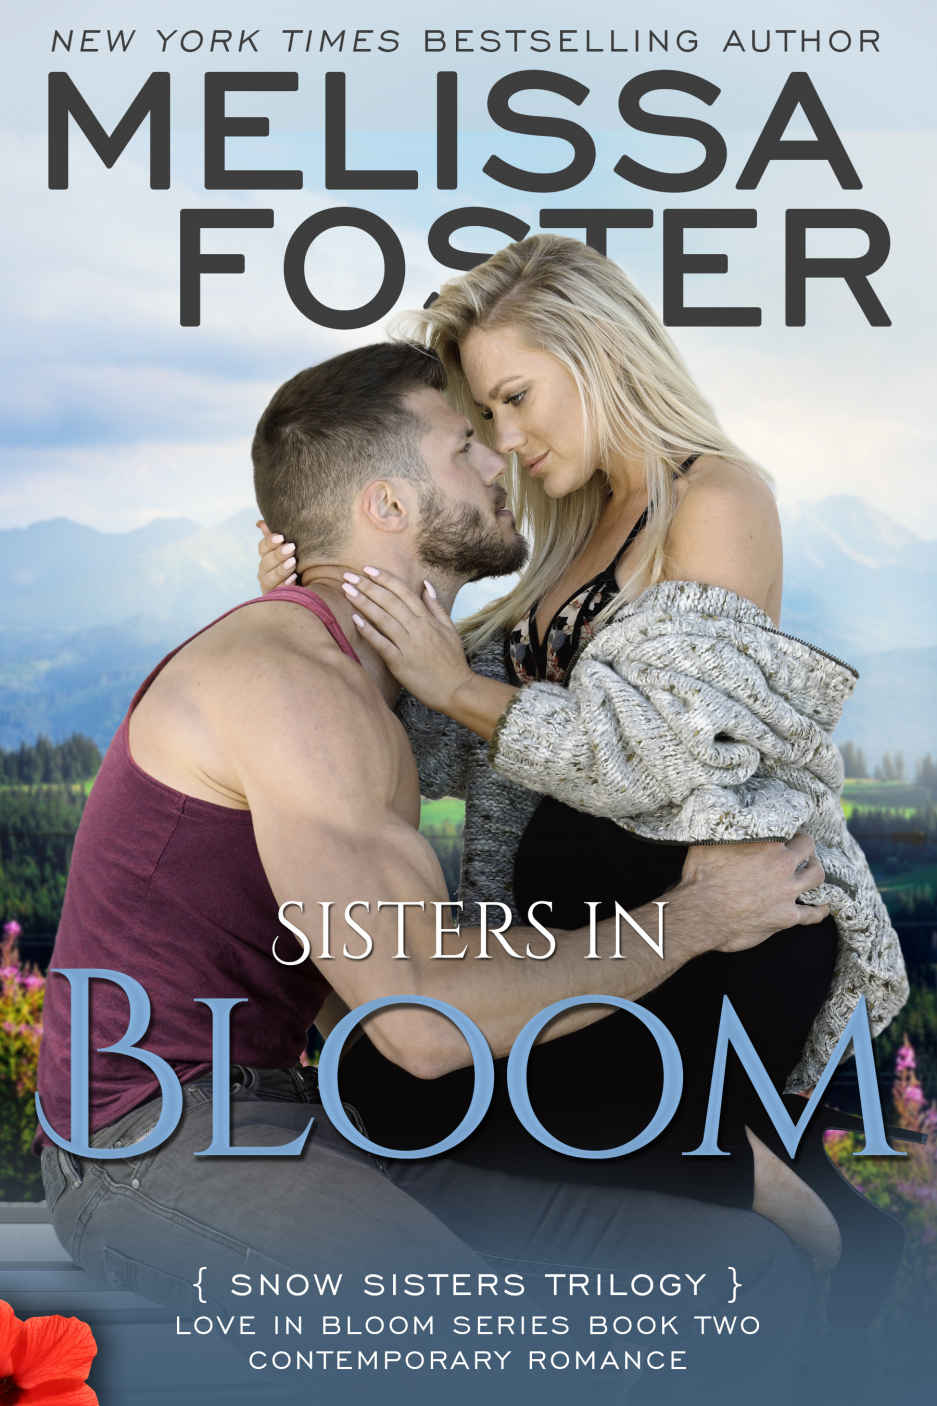 SISTERS IN BLOOM